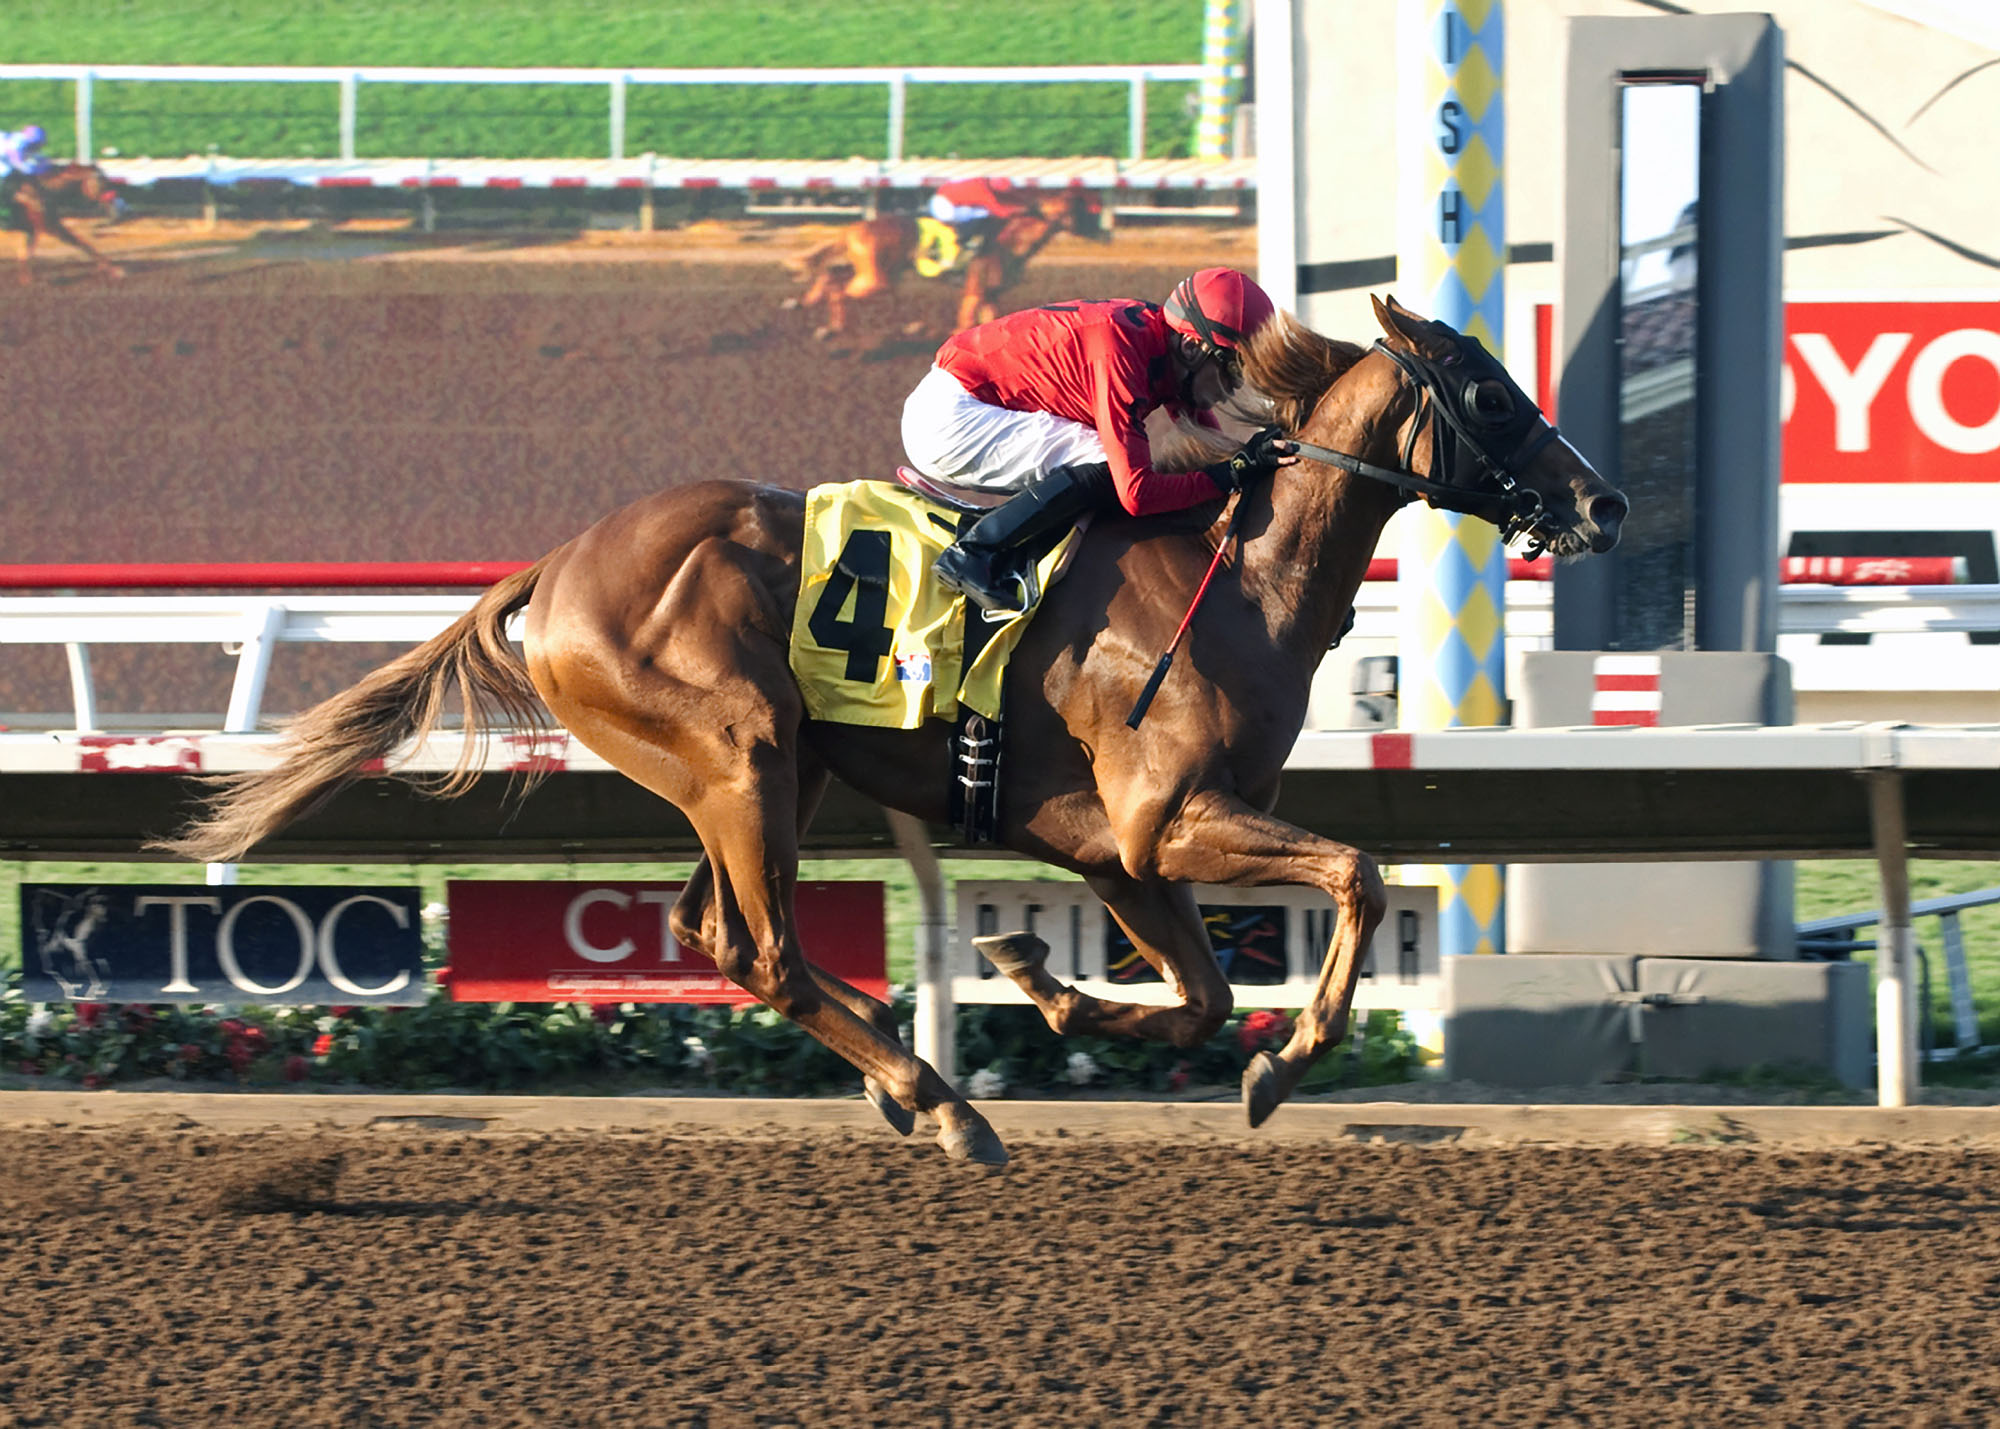 Betty or Robert G. Irvin's Smokey Image and jockey Juan Hernandez win the $150,000 I'm Smokin Stakes, Friday, Sept. 4, 2015 at the Del Mar Thoroughbred Club, in Del Mar, Calif. (Benoit Photo via AP) NO SALES